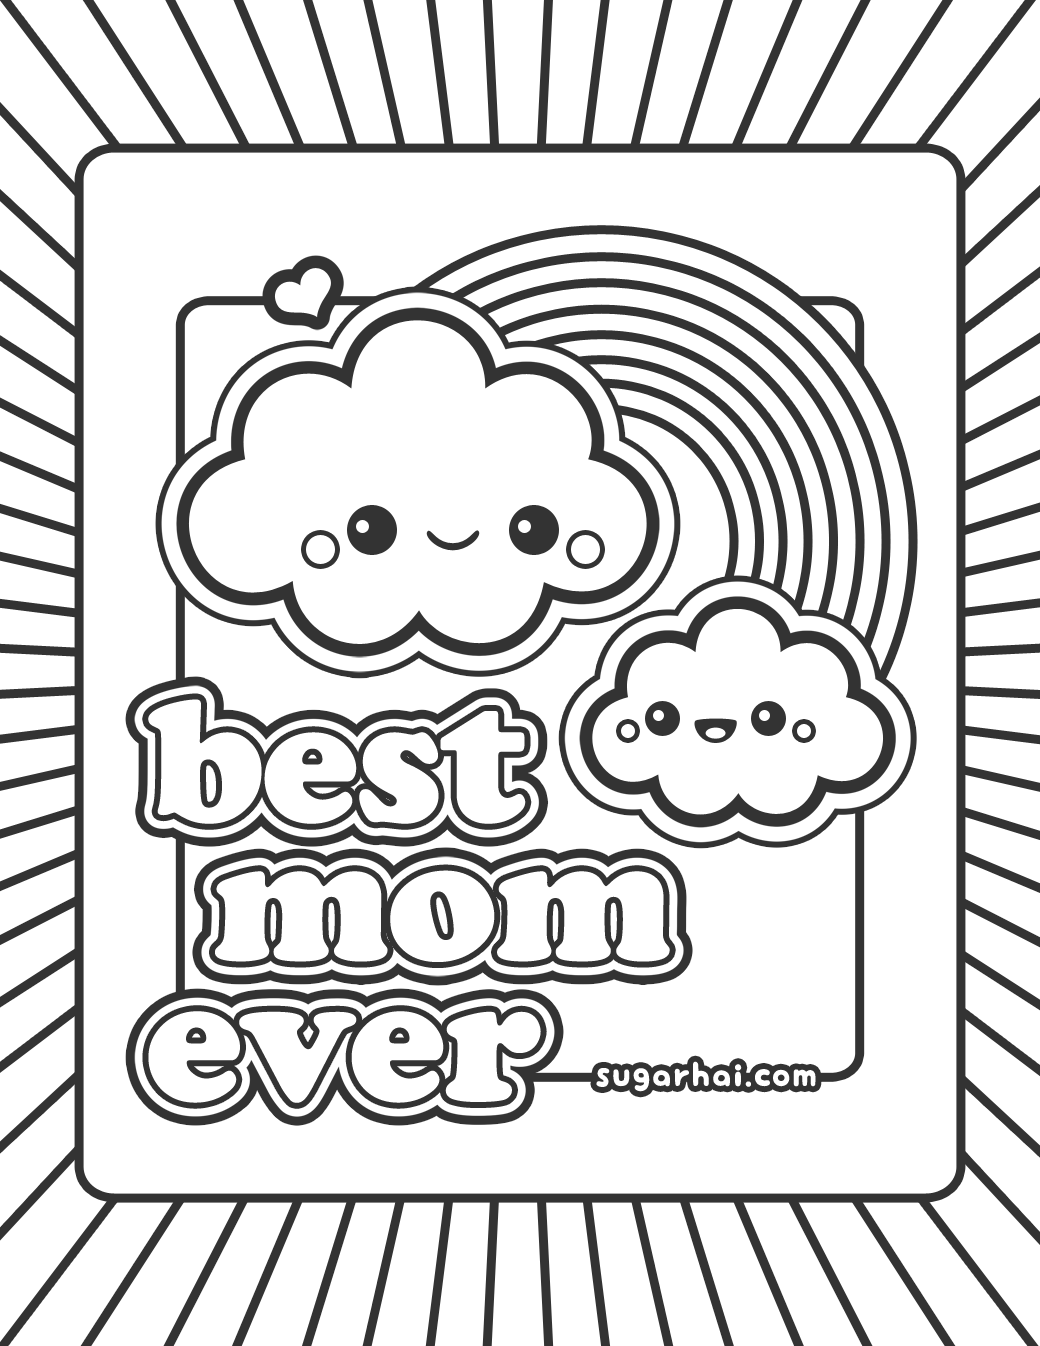 Mom And Dad Coloring Pages - Coloring - 105.5KB